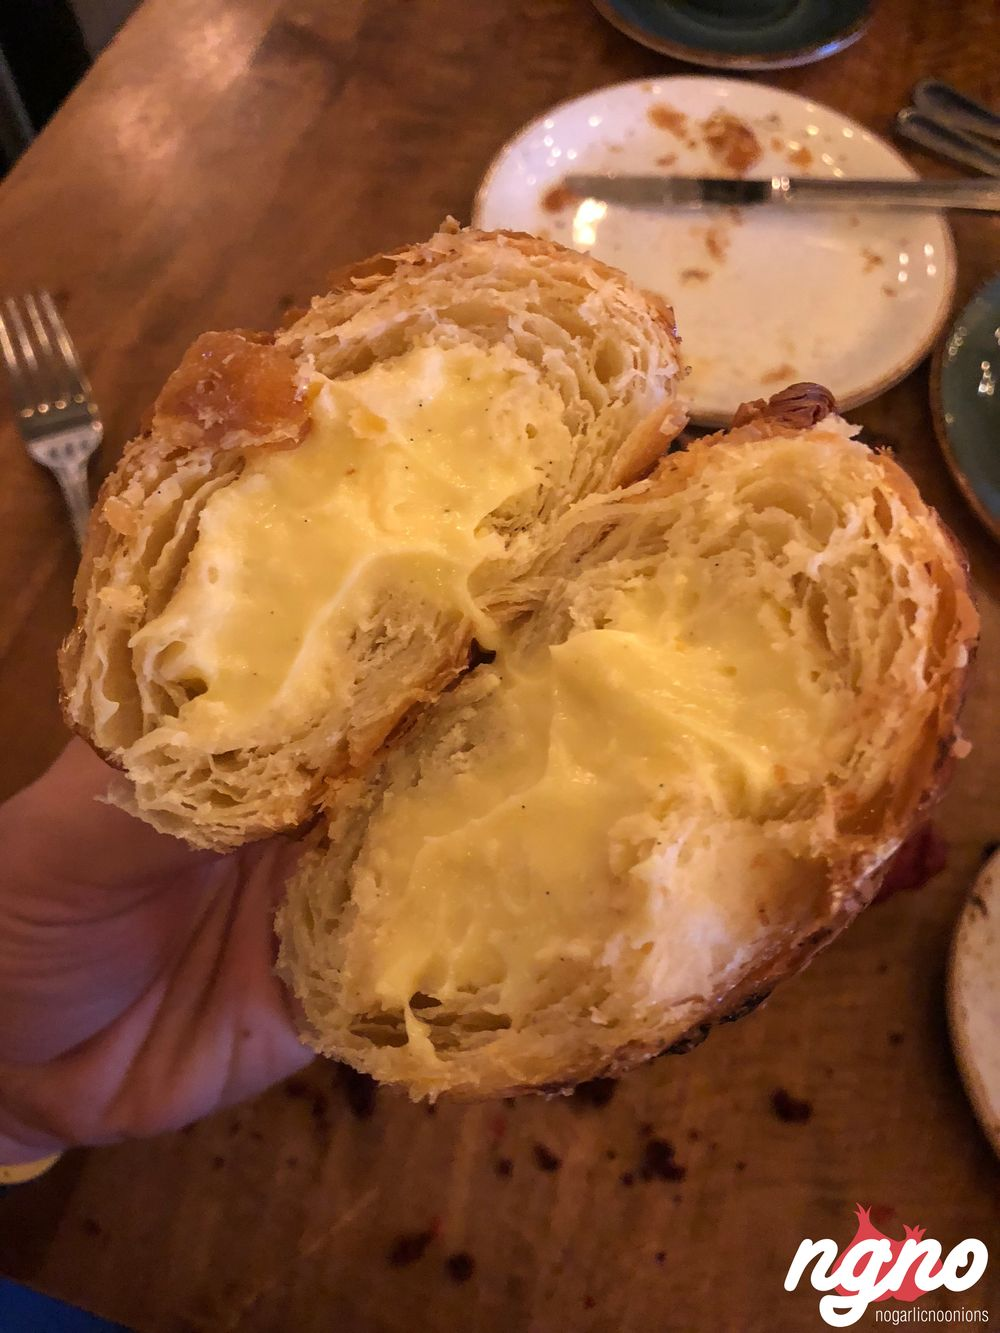 union-fare-croissant-new-york-82018-03-22-12-06-12